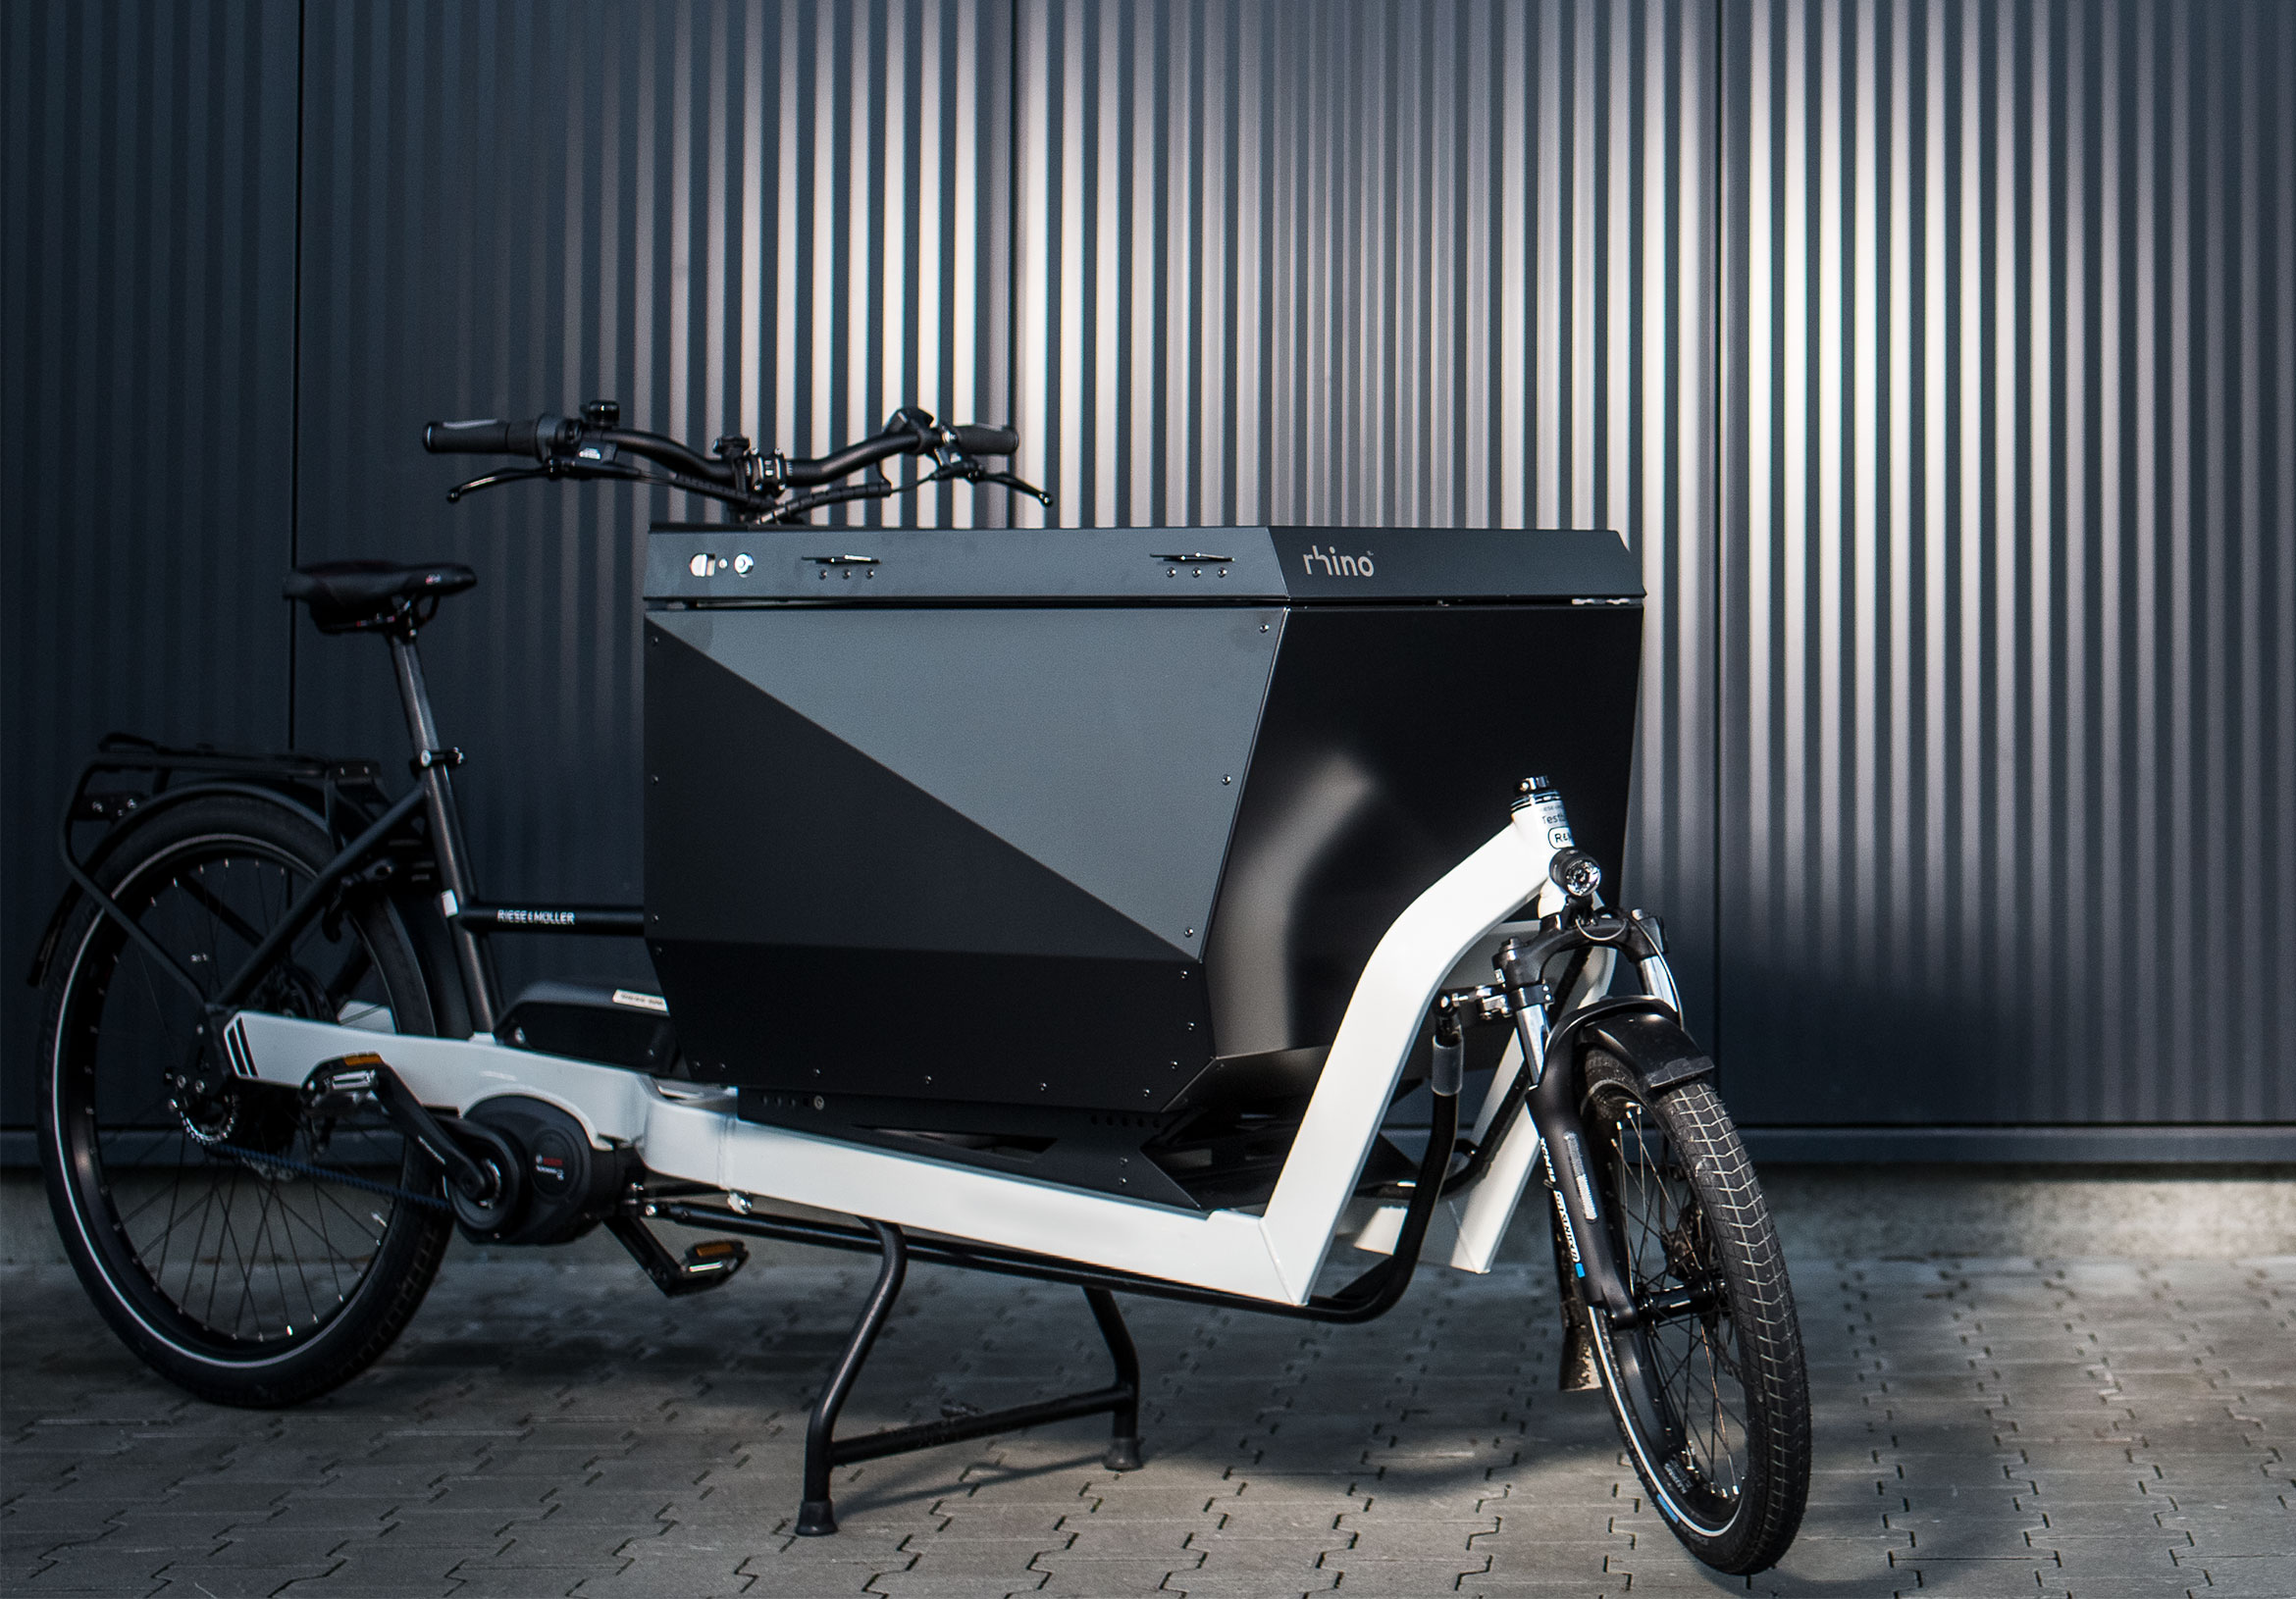 rhino: modular container systems for cargo bikes